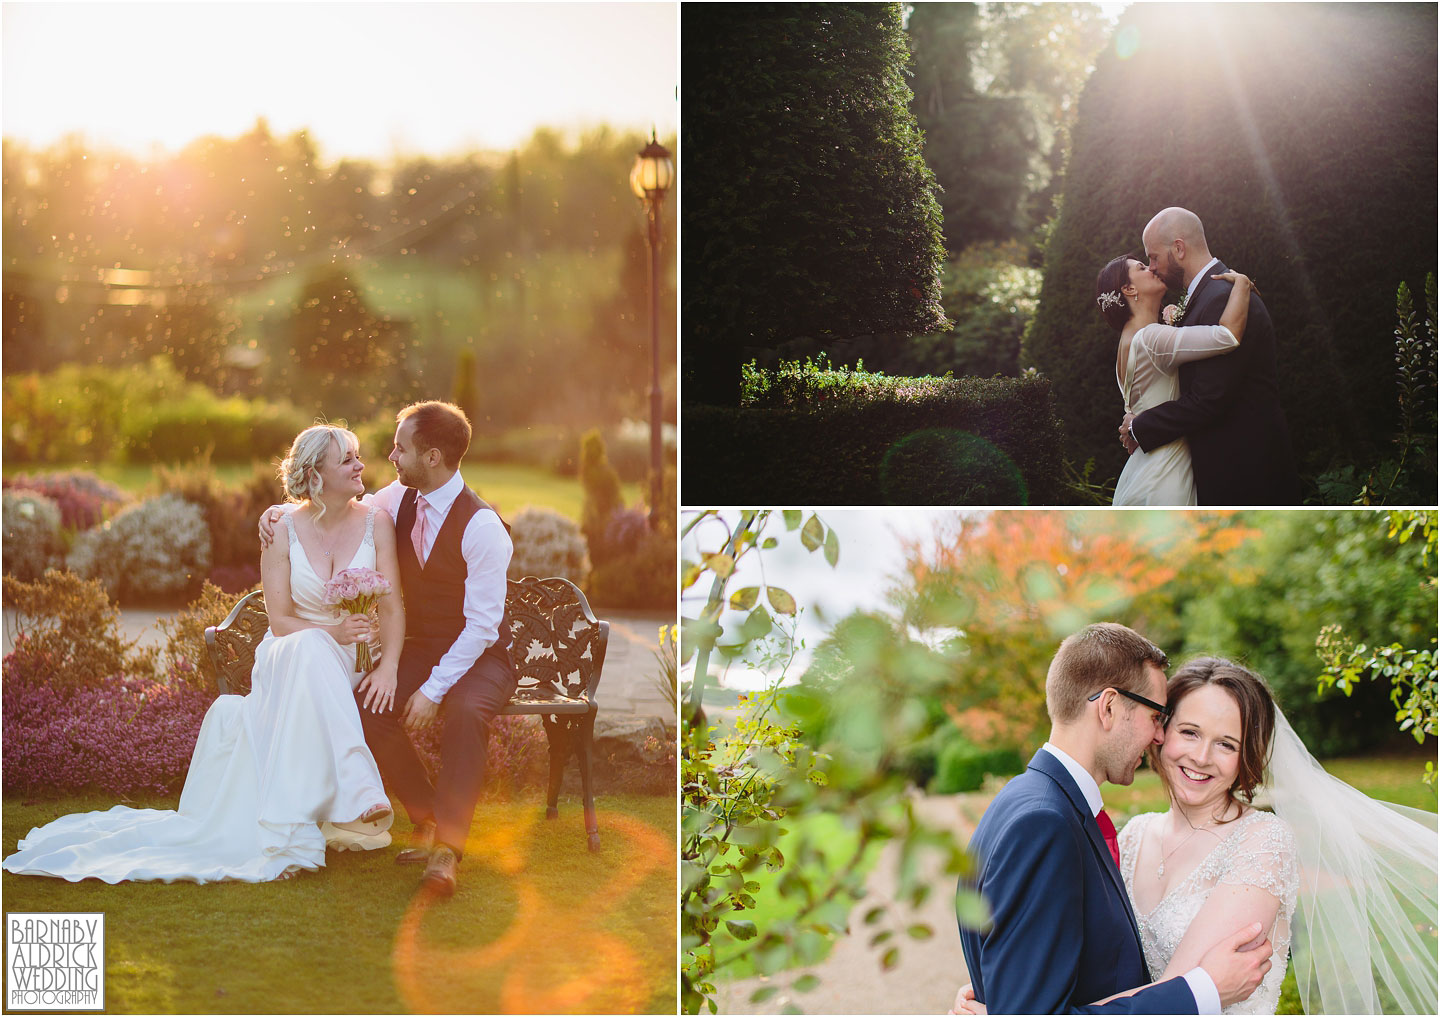 Wedding Photography at Waterton park, Wood Hall Wedding Photography, Rudding Park wedding